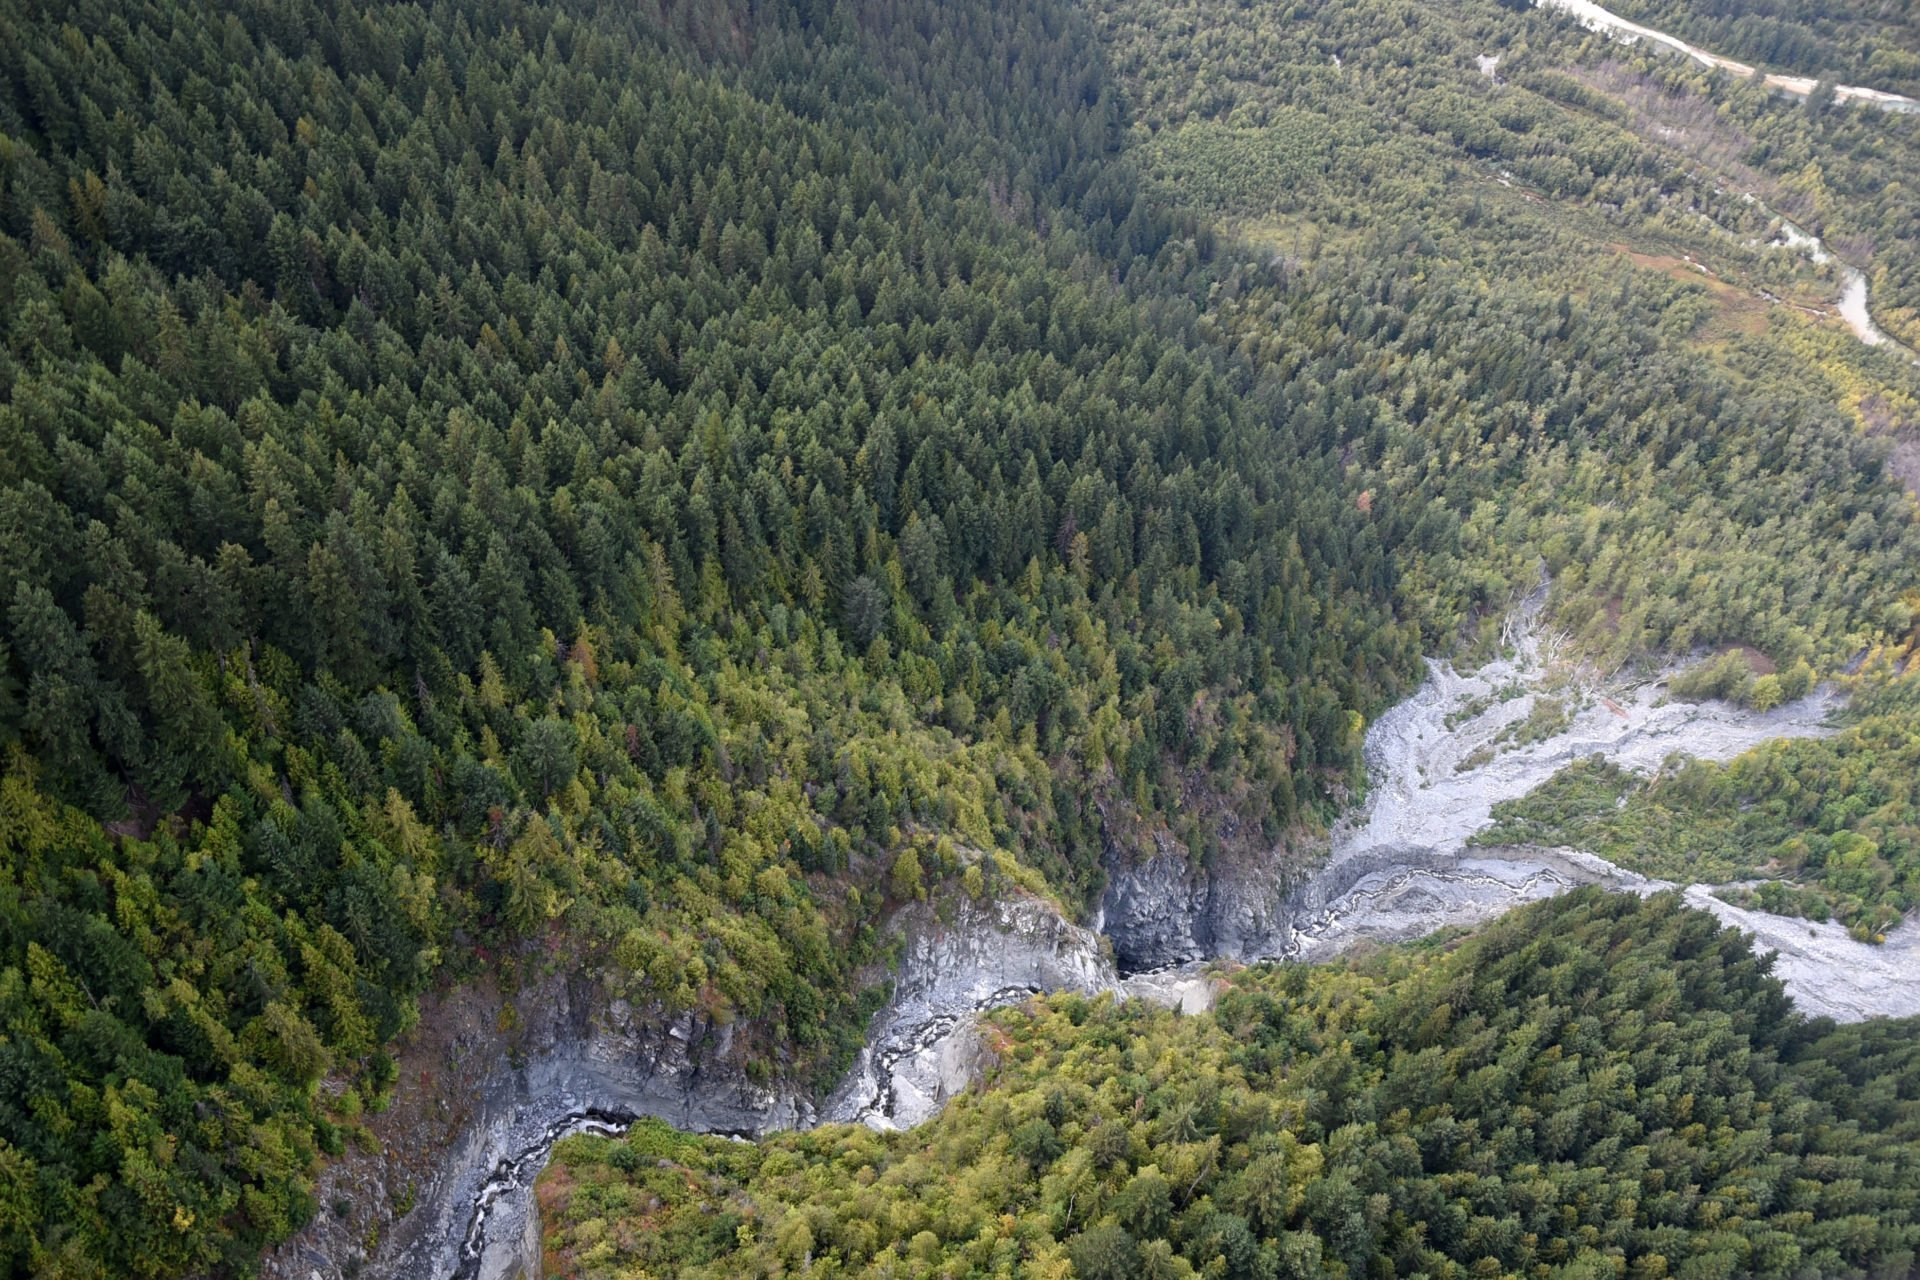 Active debris flowing through a river in the mountains